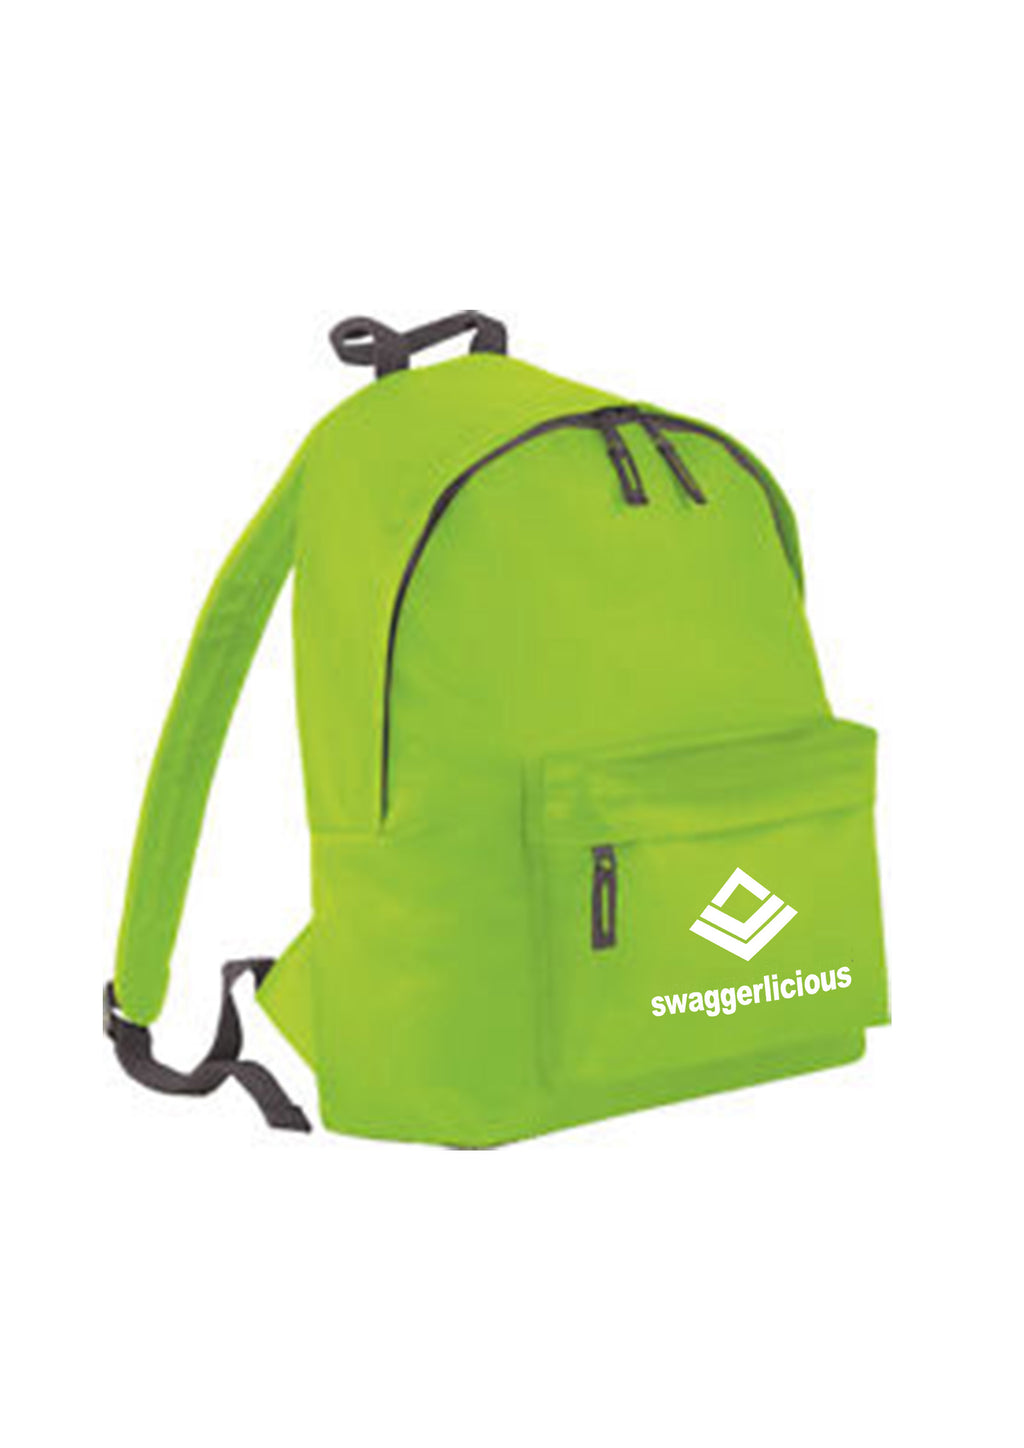 LIME GREEN SWAGGERLICIOUS BACKPACK - swaggerlicious-clothing.com